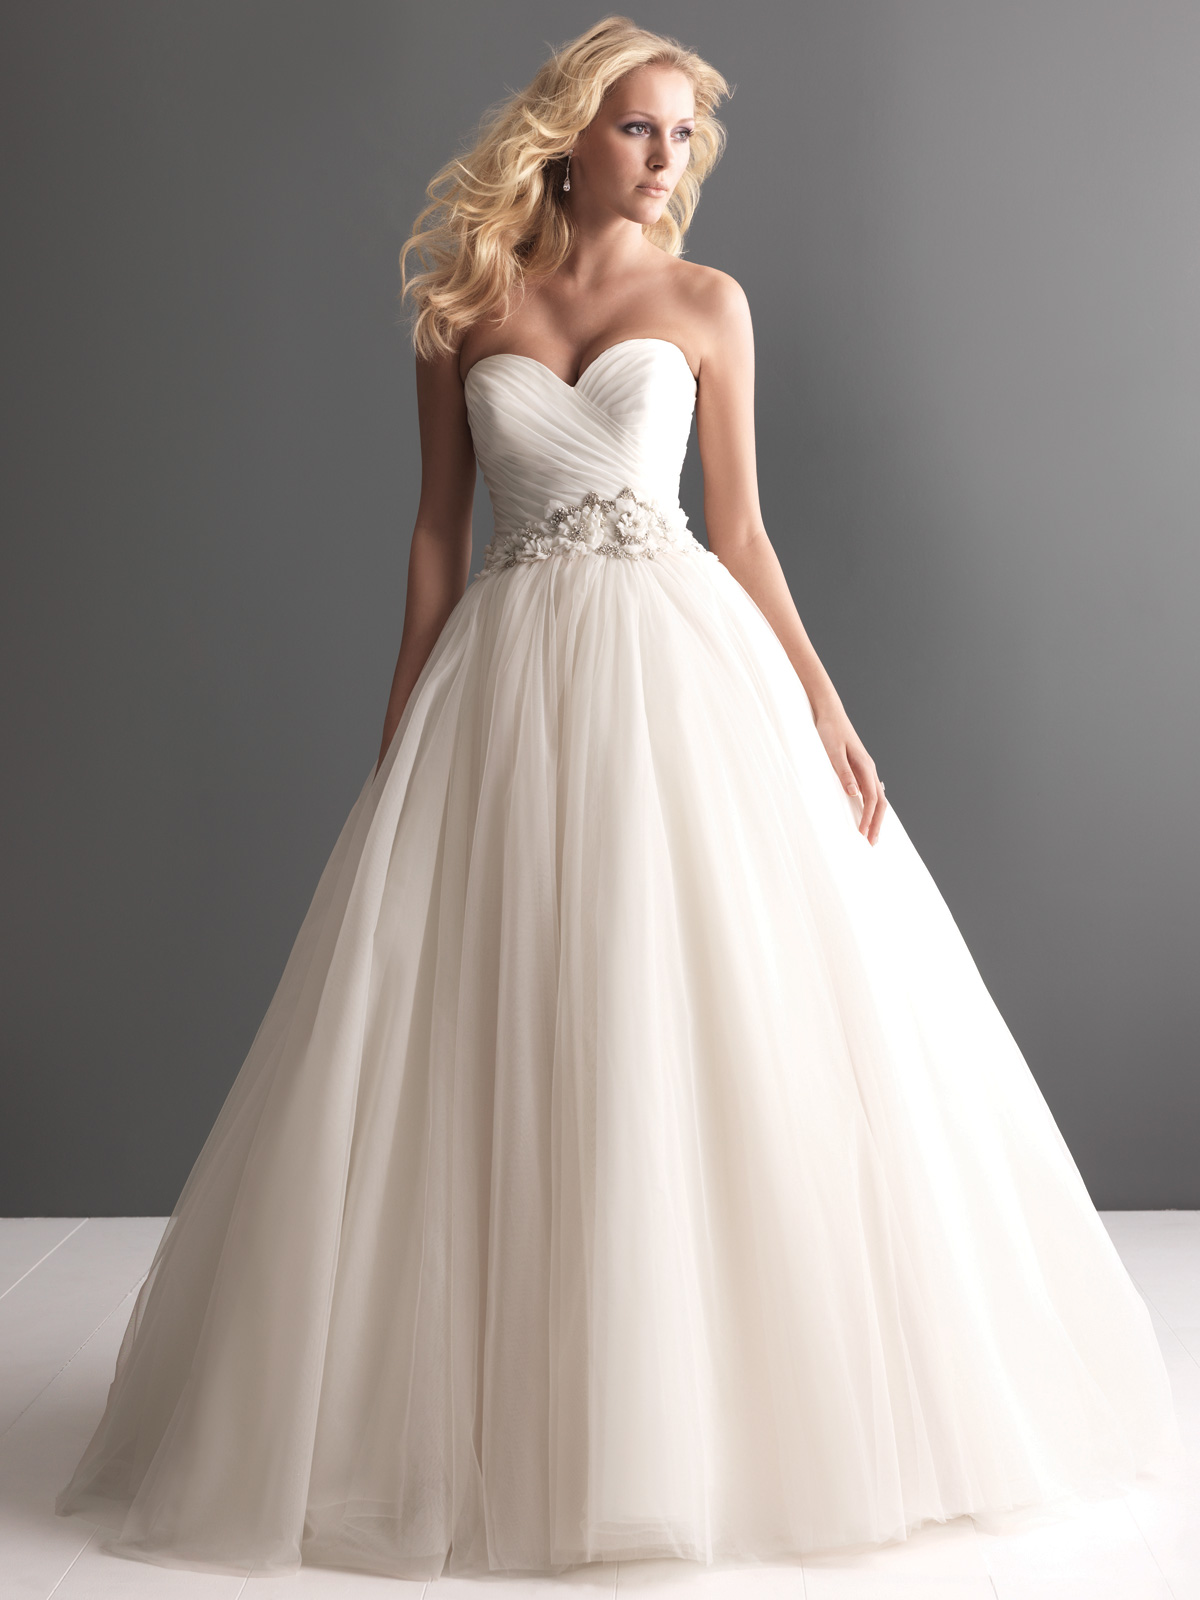 Sweetheart Ball Gown Allure Romance Bridal Gown 2607|DimitraDesigns.com